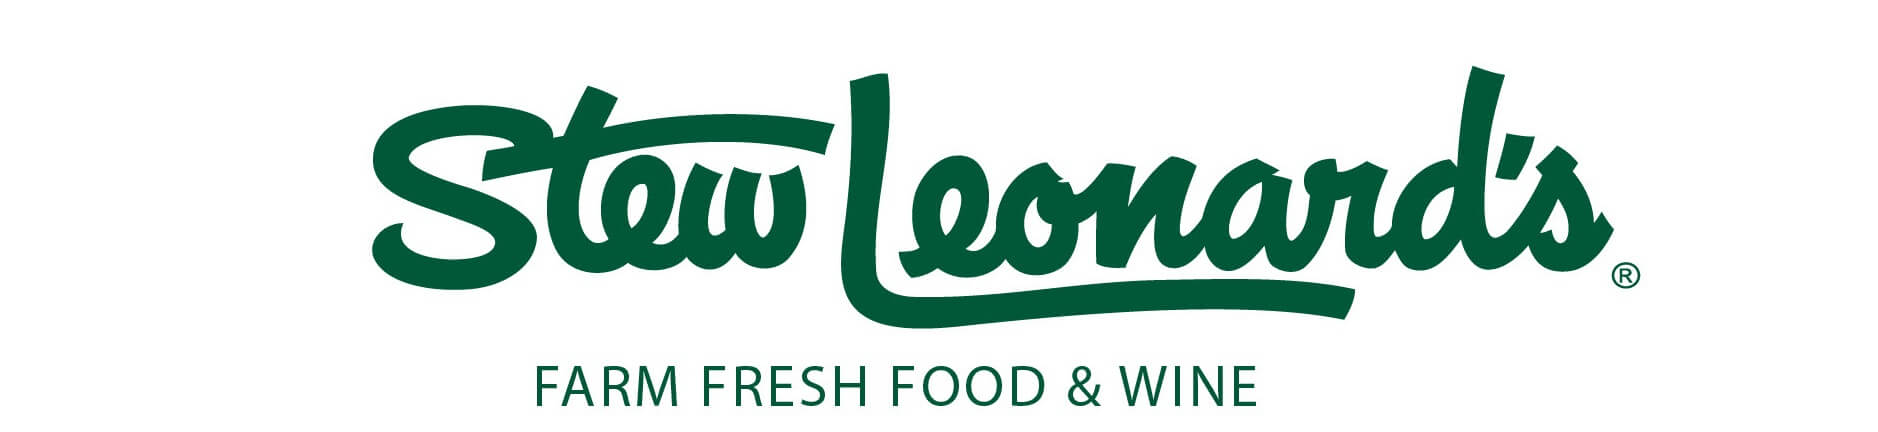 Stew Leonards Paramus Farm Fresh Food and Wine